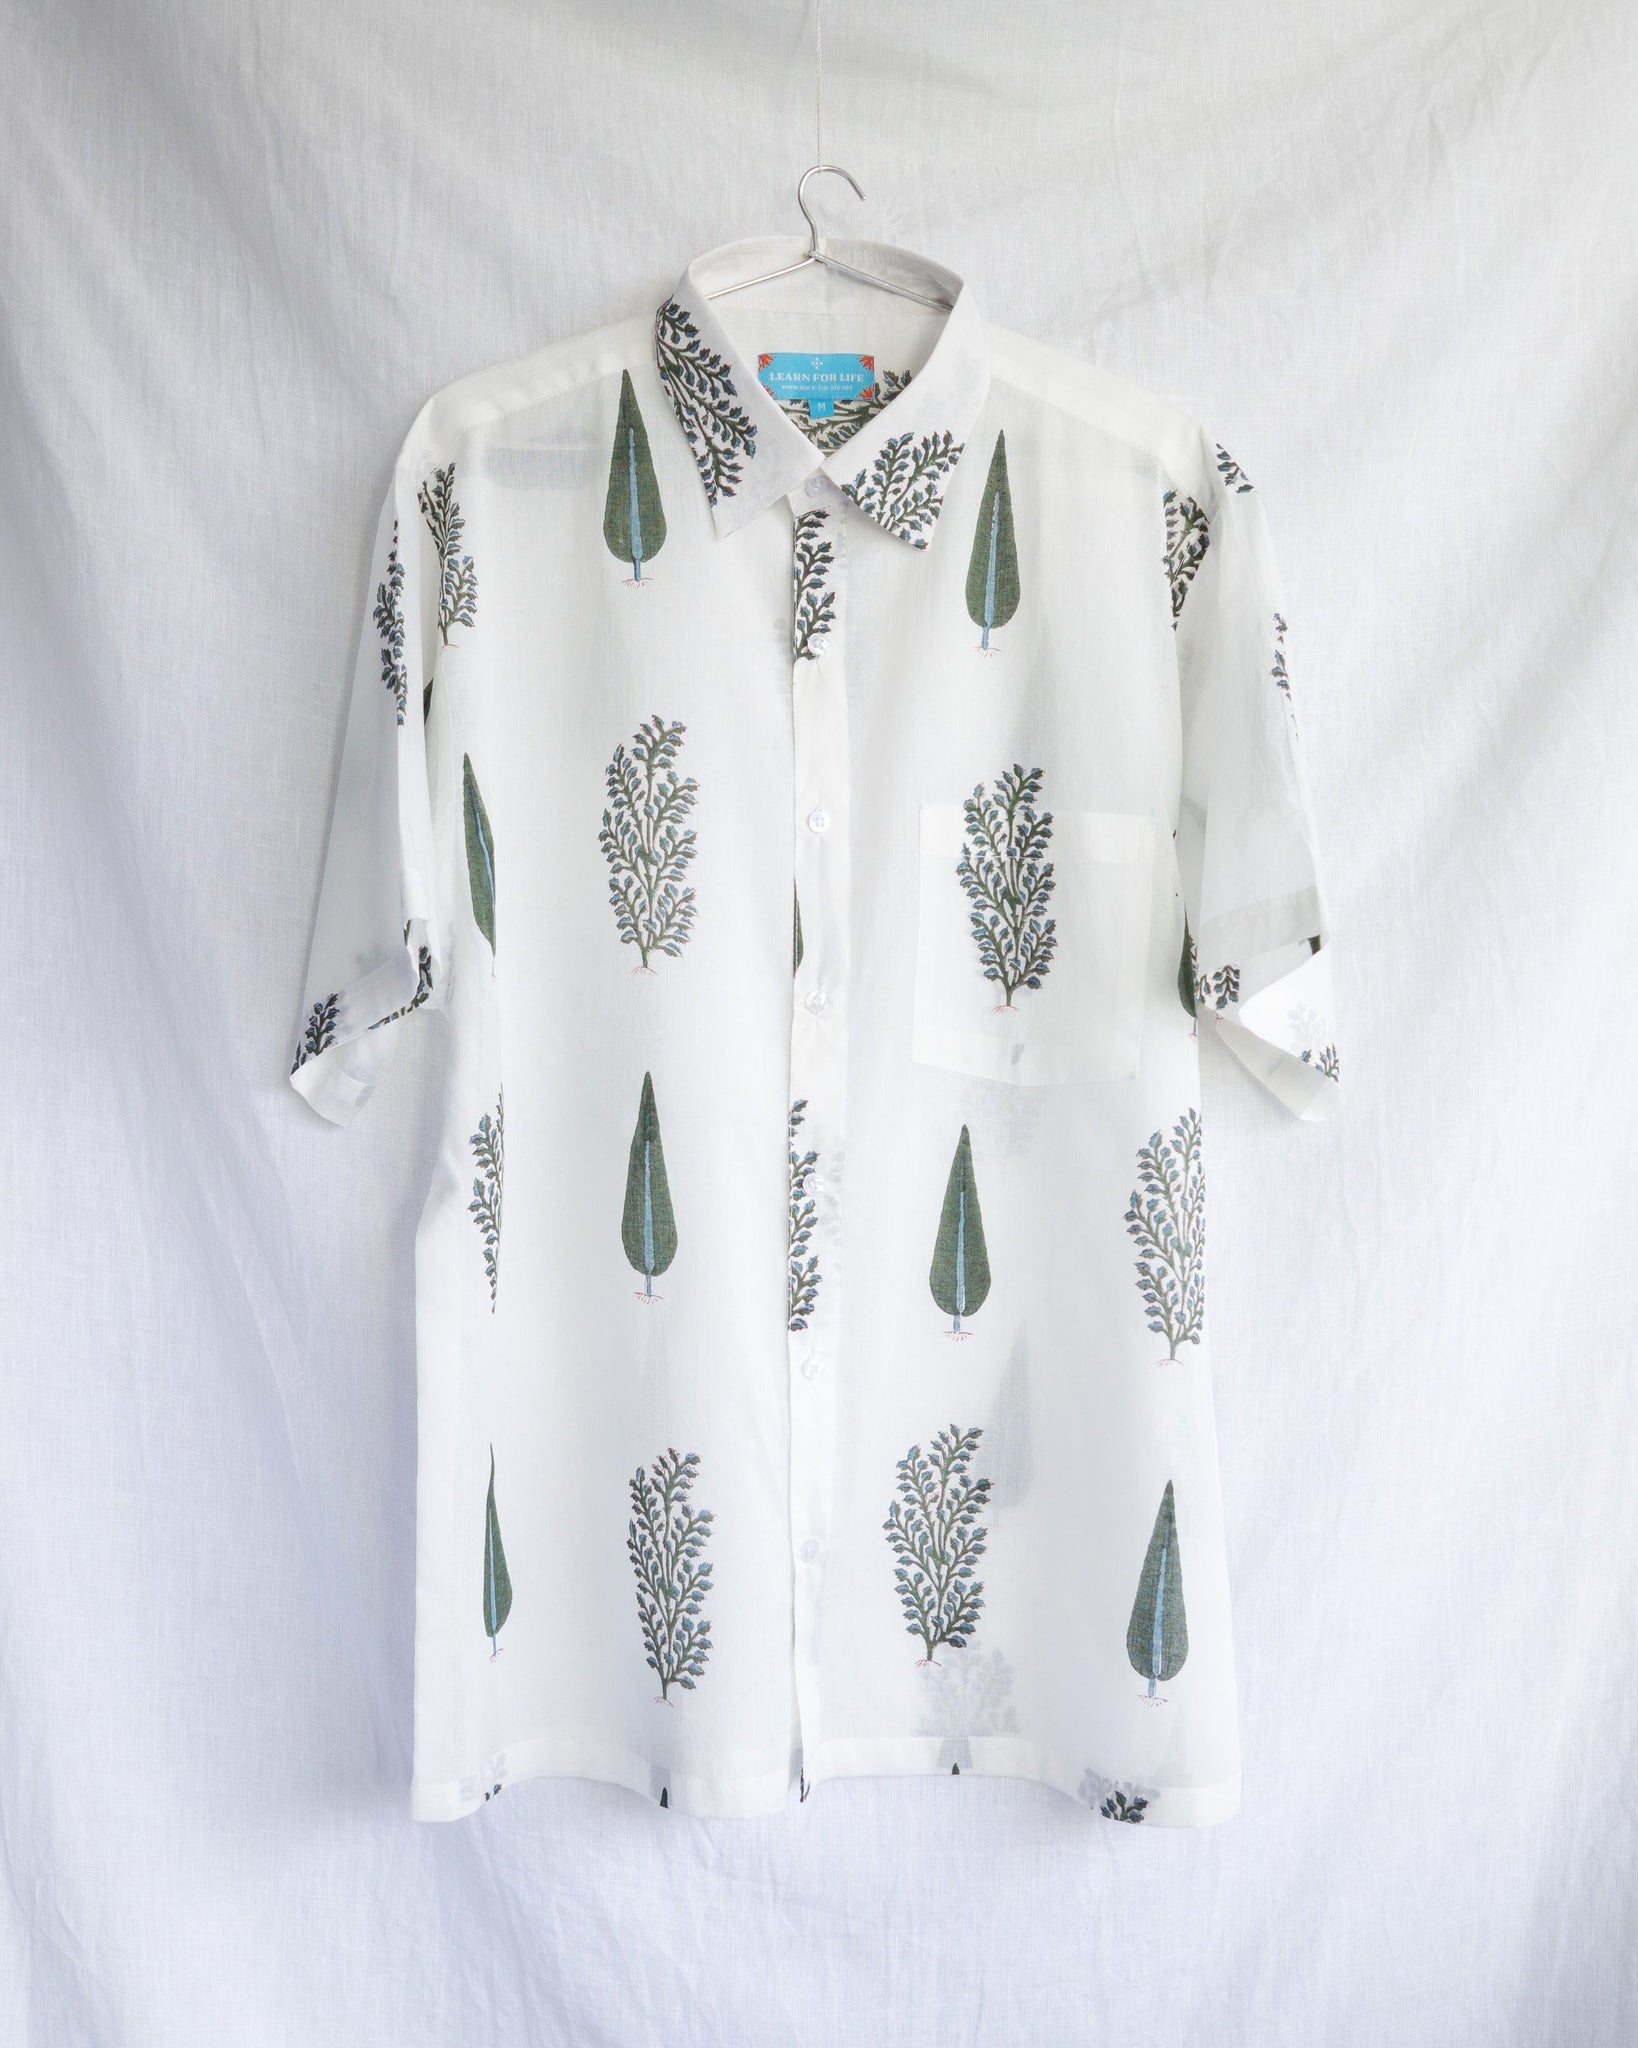 Men's Casual Short Sleeve Shirt - White with Botanical Motif Hand-Blockprint Cotton